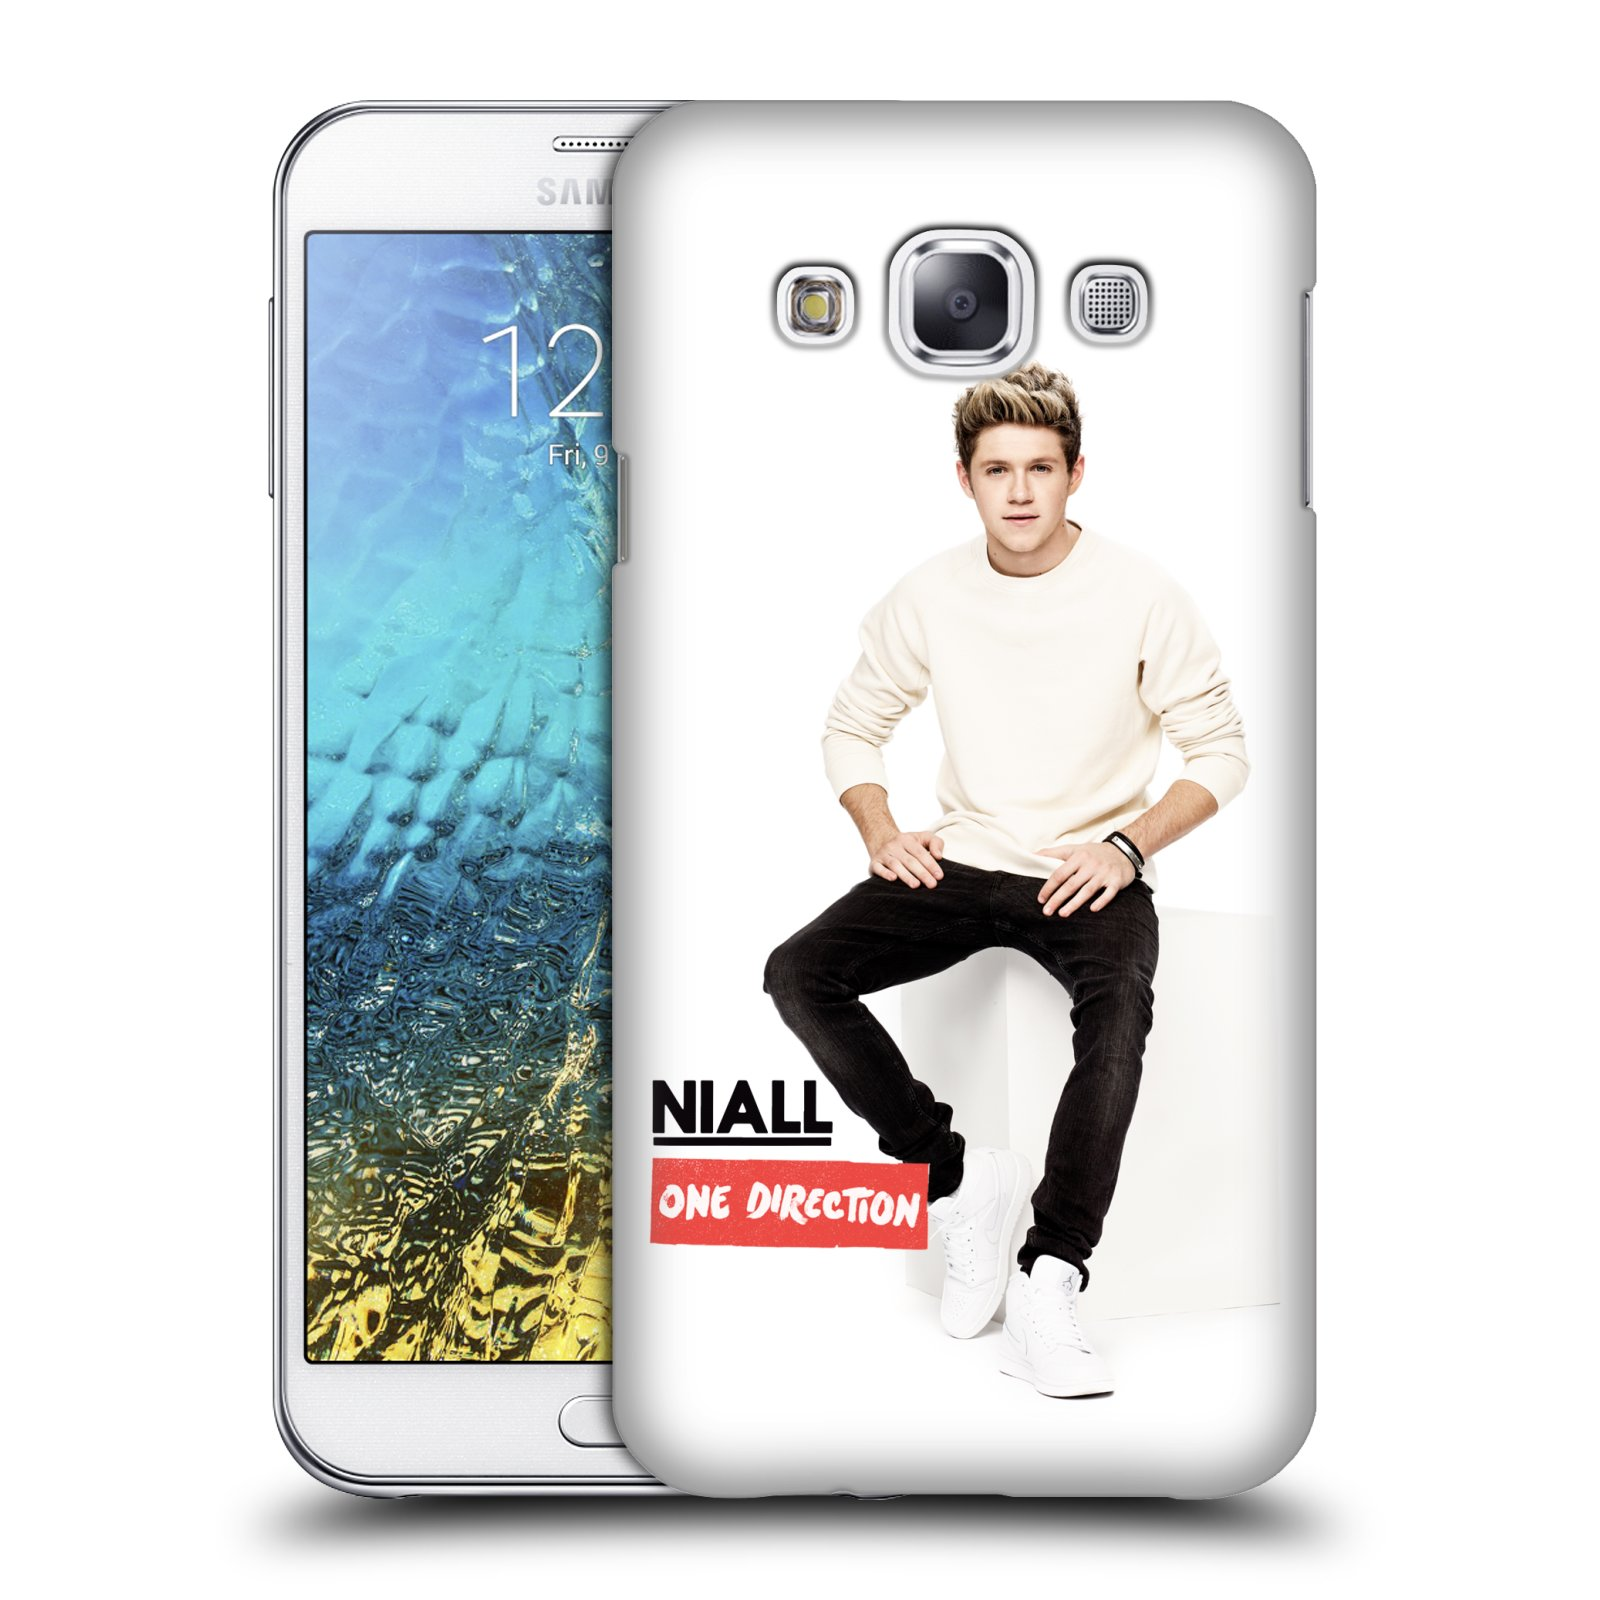 official one direction niall horan photo hard back case